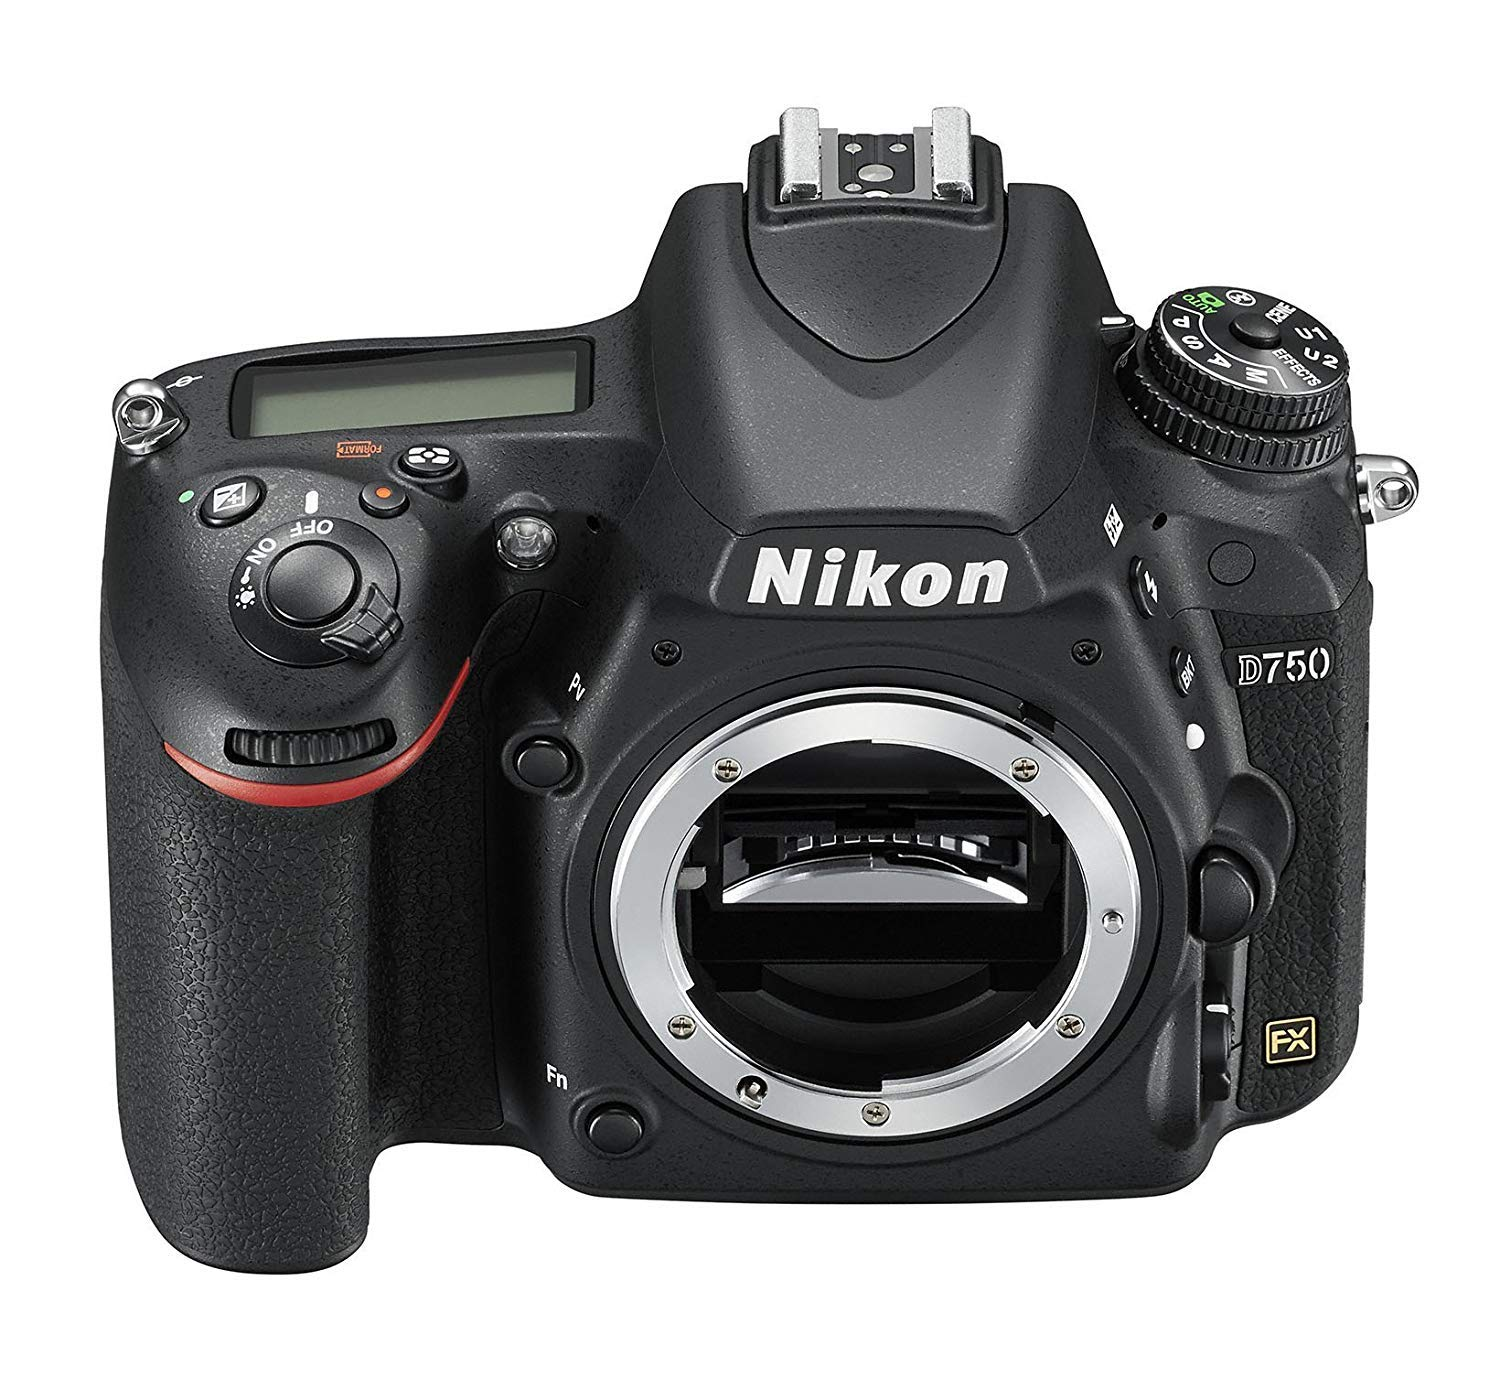 Nikon D750 Body Only - 24.3 MP